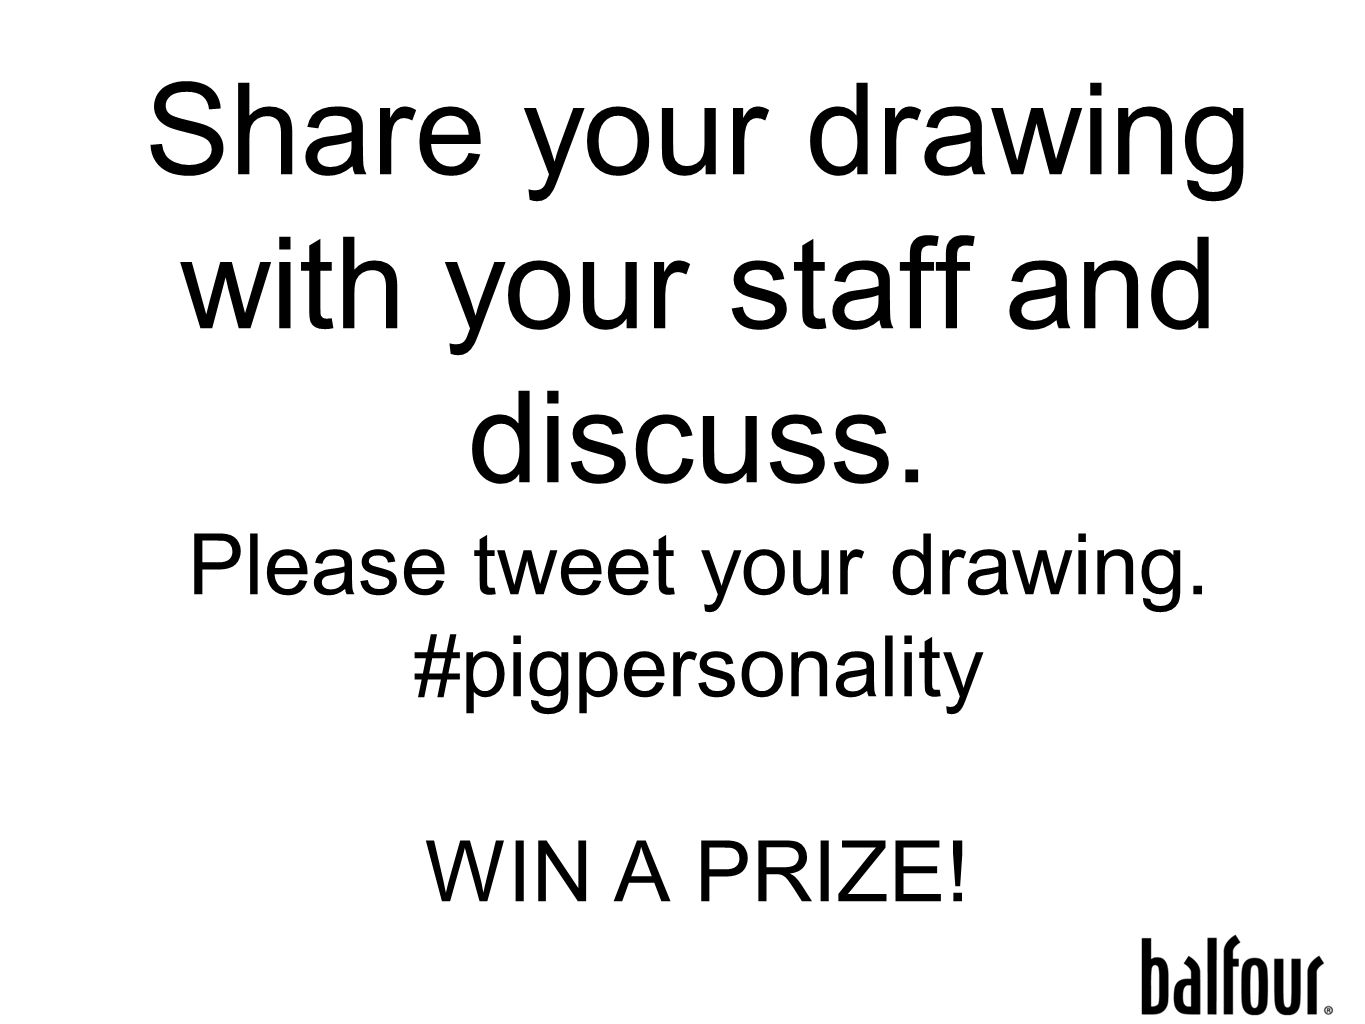 Share your drawing with your staff and discuss. Please tweet your drawing.